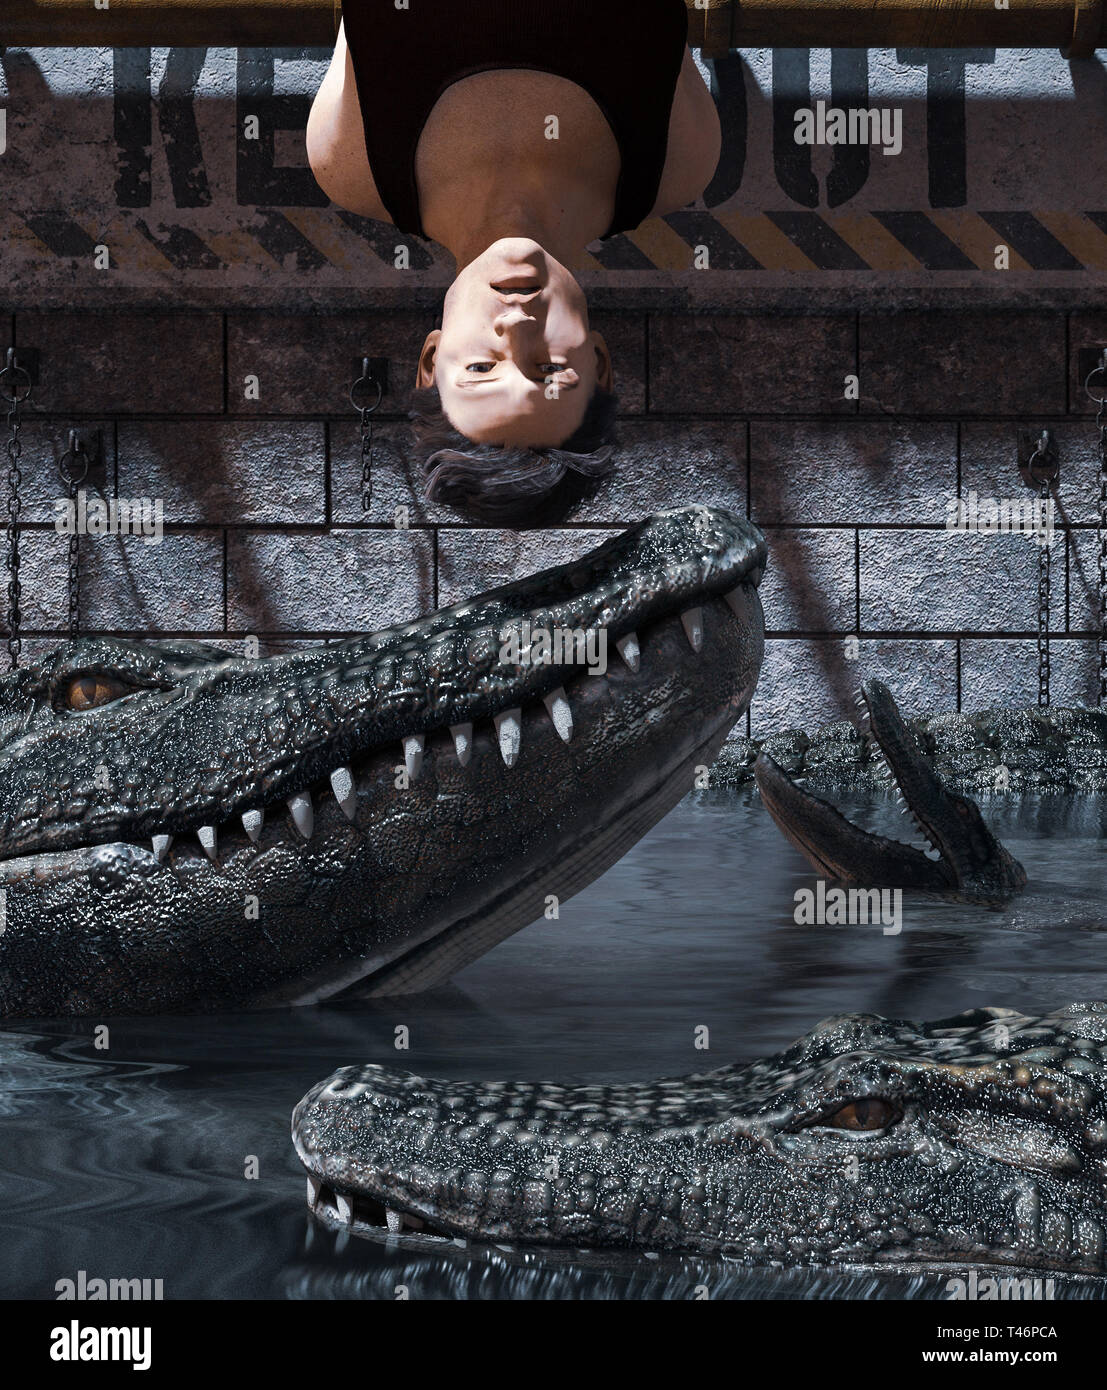 Pray to be prey,Man being tied up in  Alligator's tank,3d rendering - Stock Image